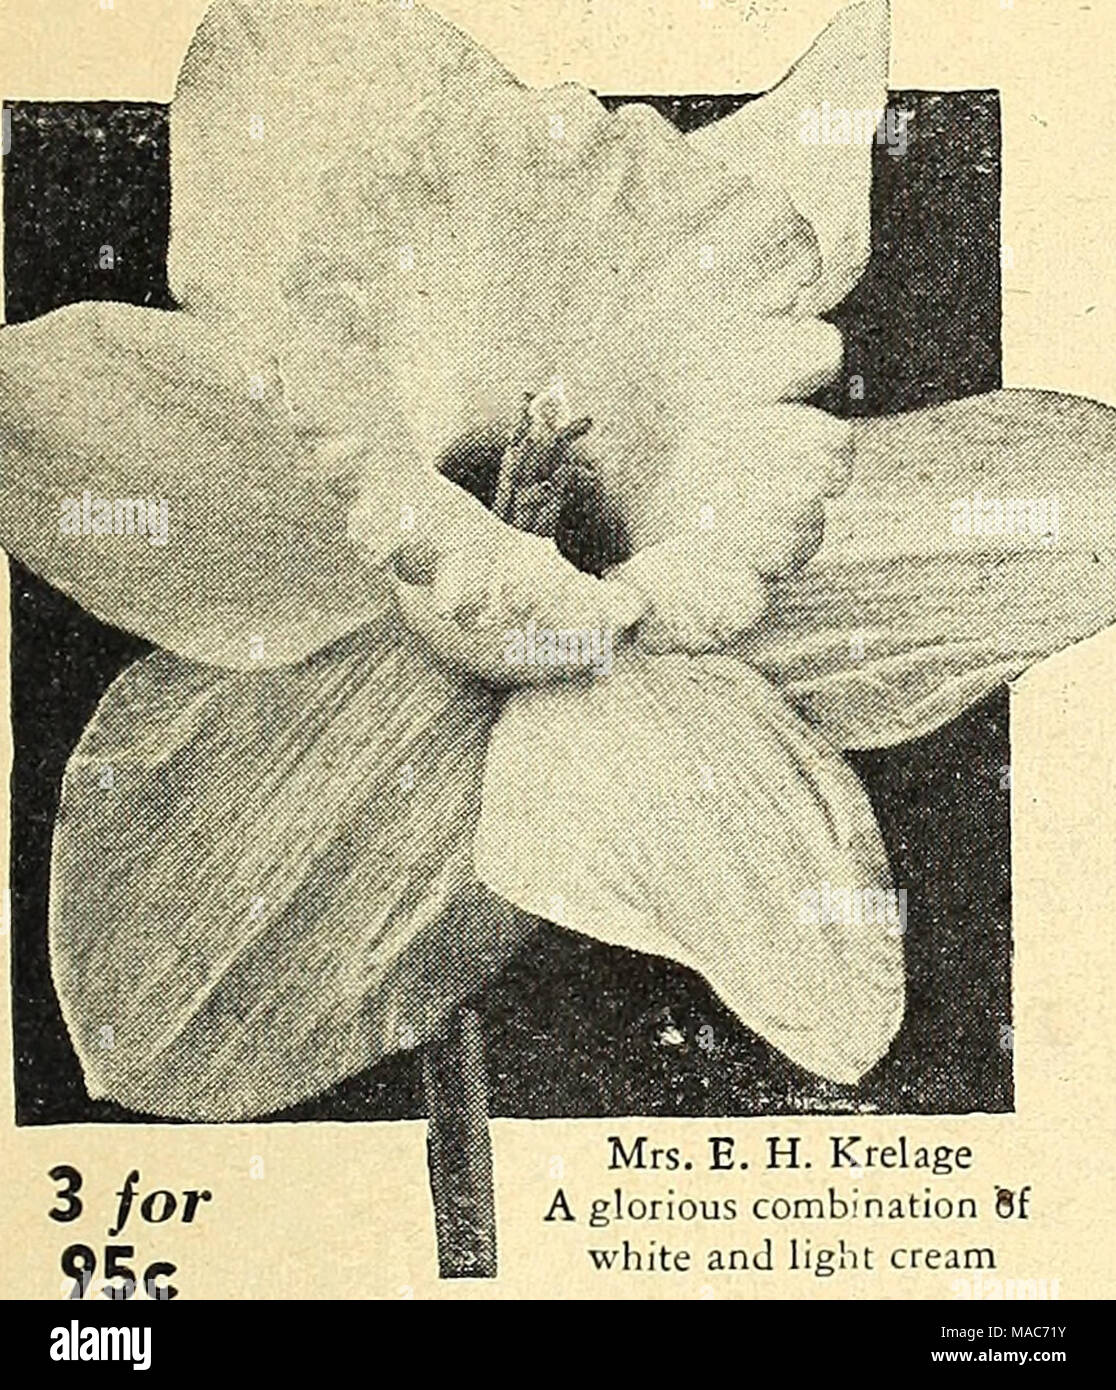 Dreers Planting Guide Autumn 1944 A Glorious Combination Sf White